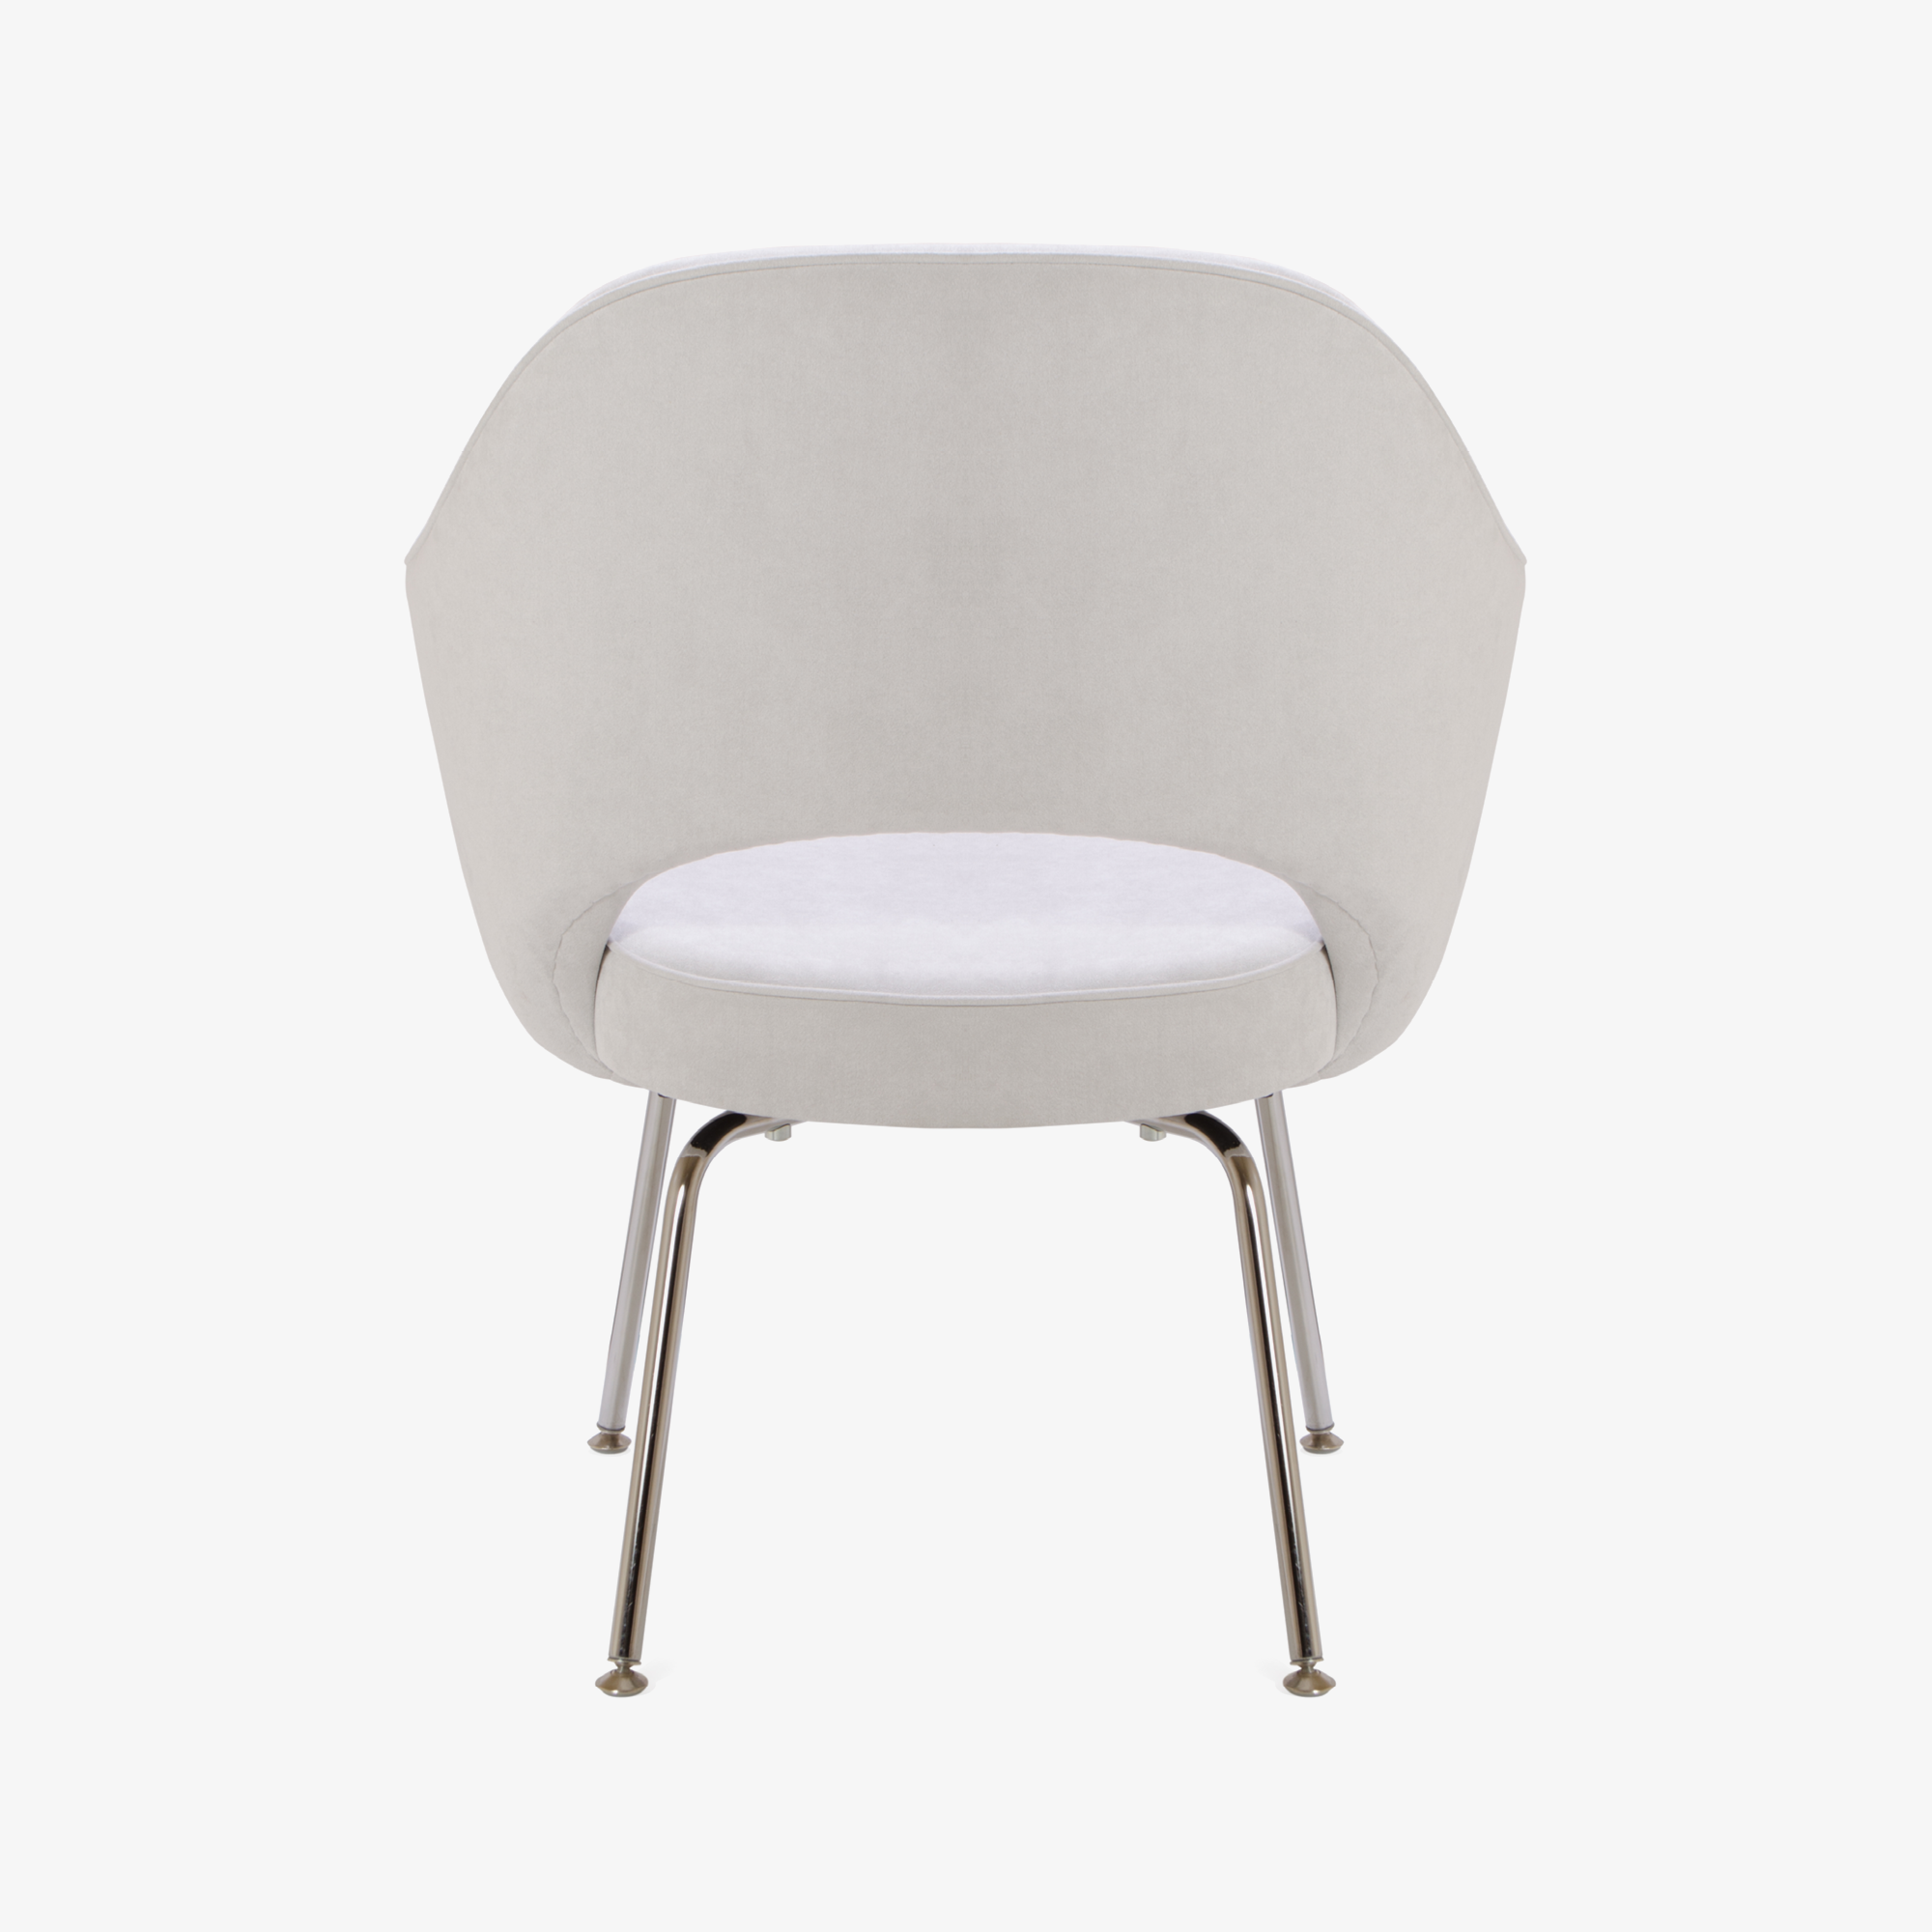 Knoll Saarinen Executive Arm Chair in Luxe Suede